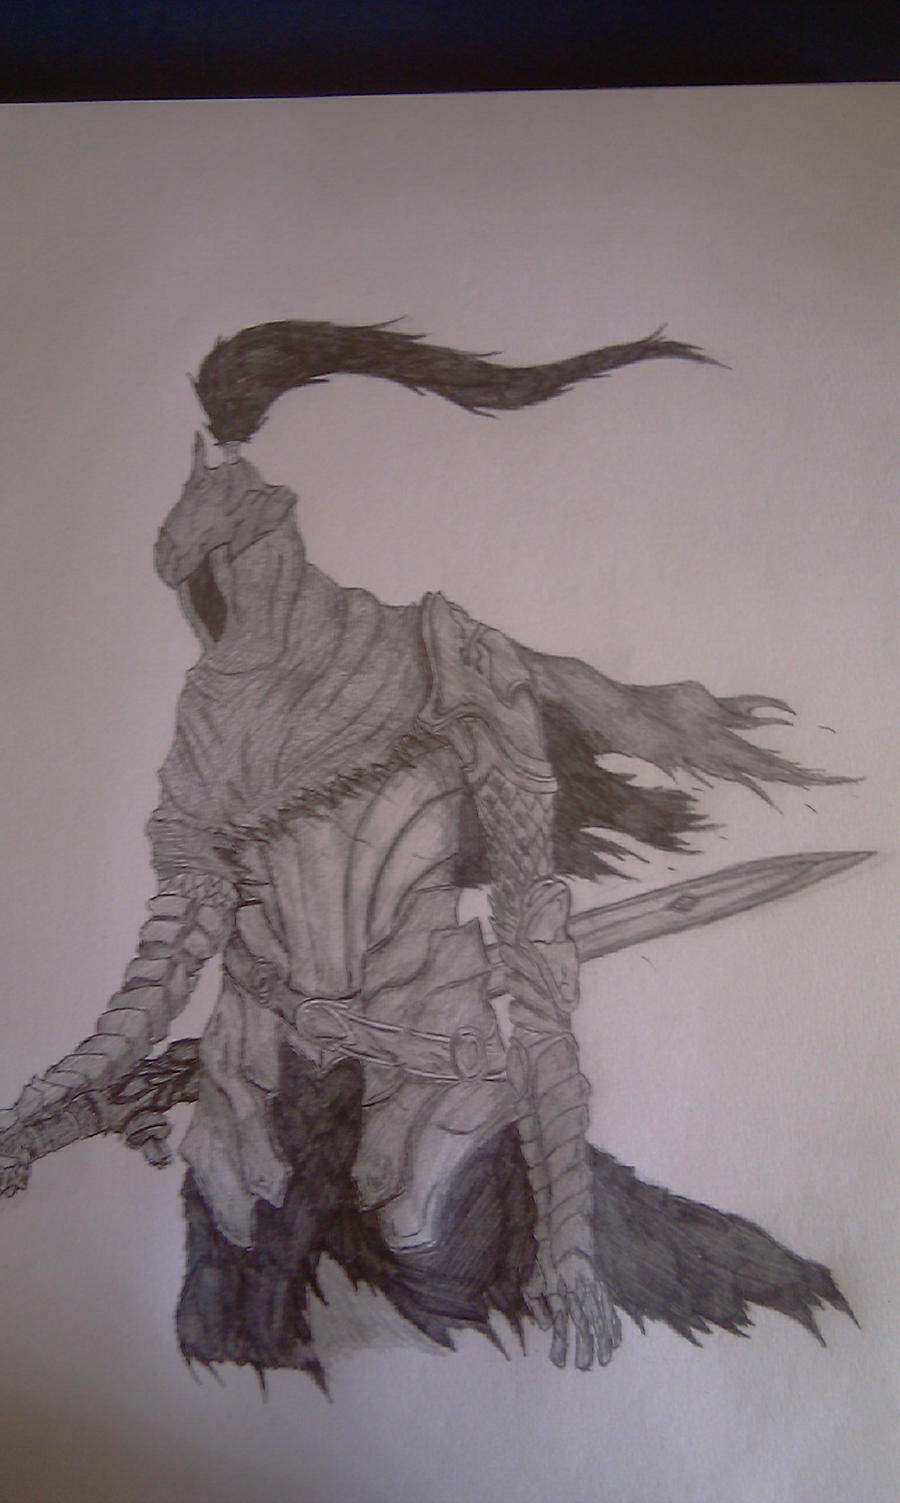 Artorias The Abysswalker by ccxcc233